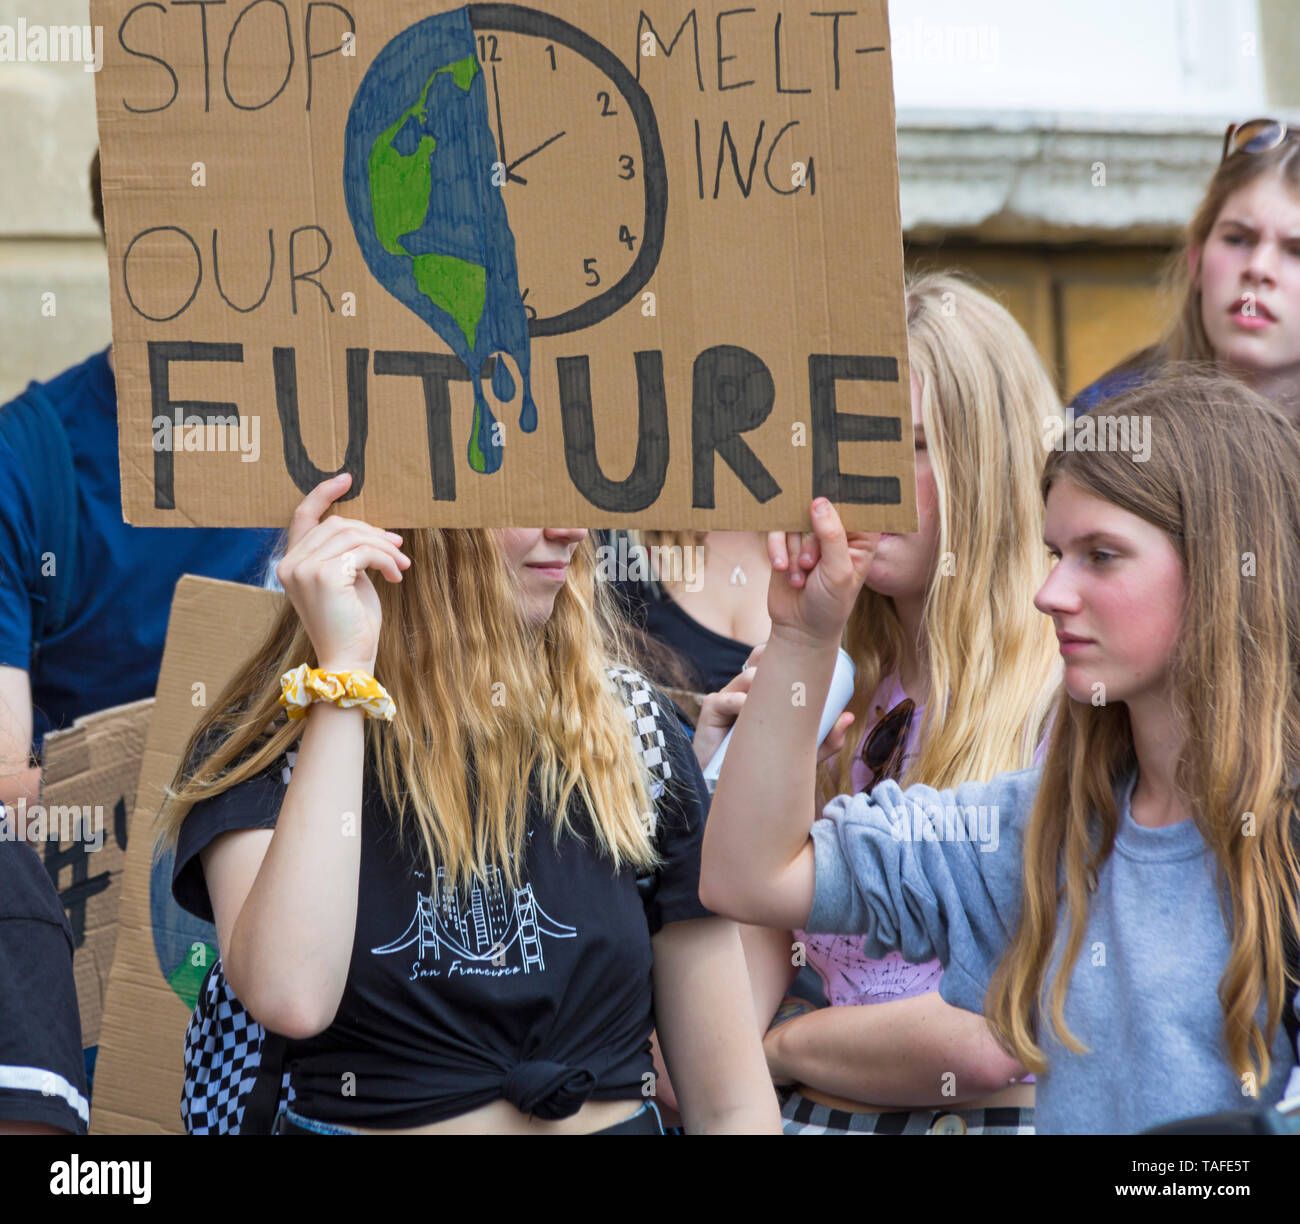 Bournemouth, Dorset, UK. 24th May 2019. Youth Strike 4 Climate gather in Bournemouth Square with their messages about climate change, before marching to the Town Hall.  Stop melting our future sign. Credit: Carolyn Jenkins/Alamy Live News Stock Photo